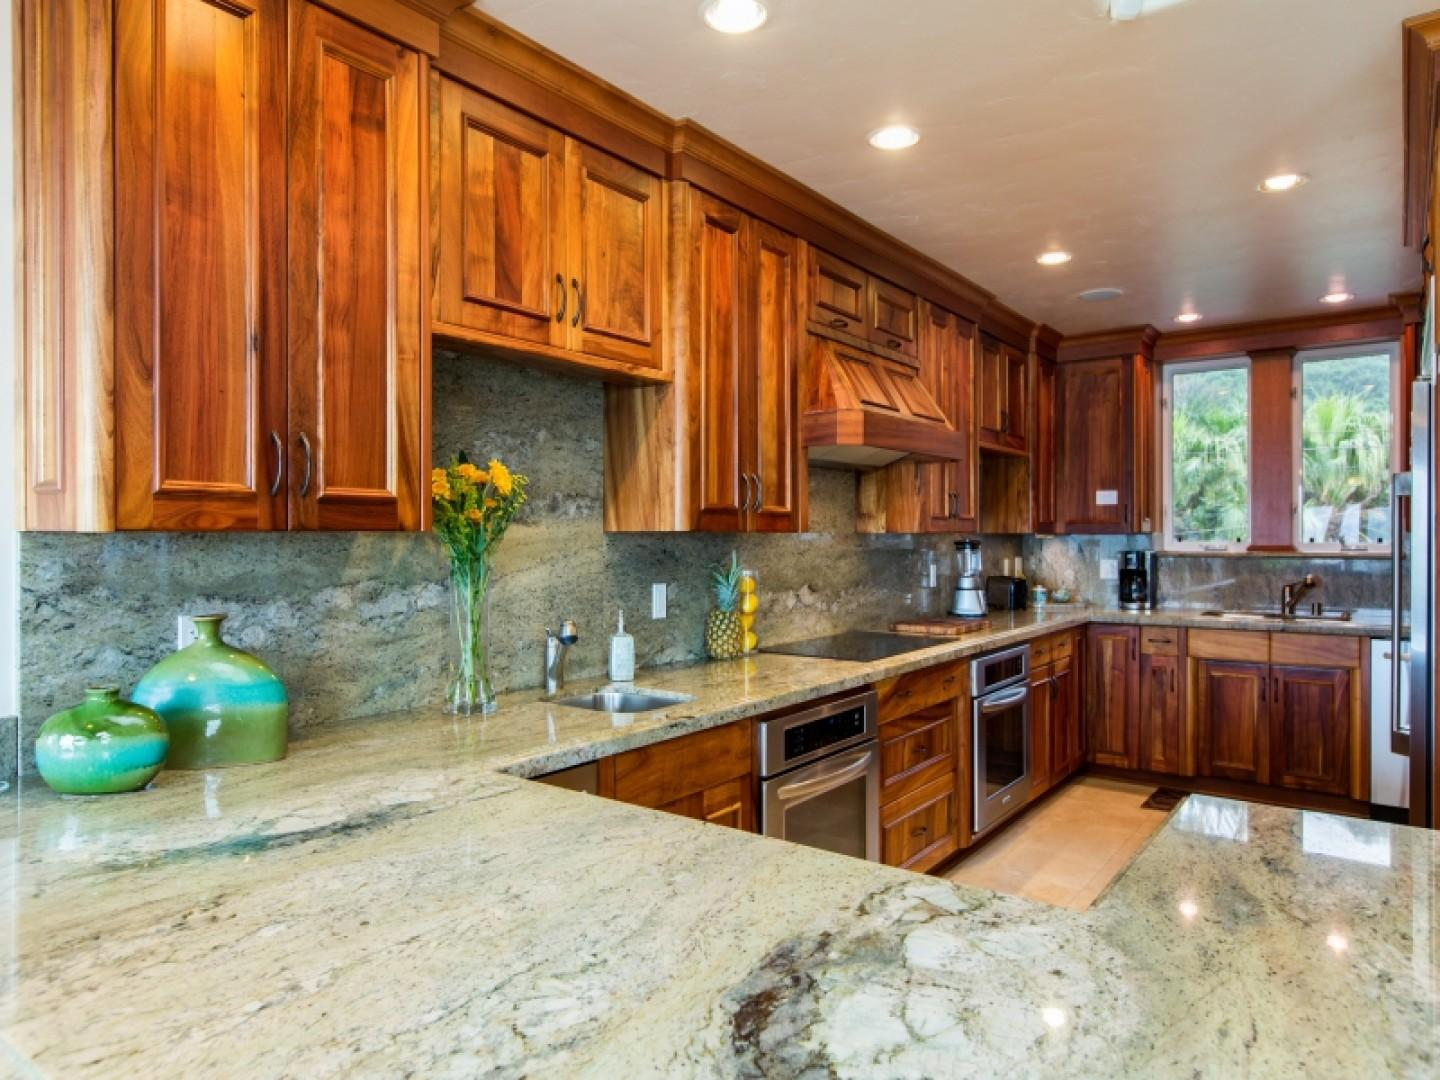 Spacious open kitchen with granite counter tops and koa wood cabinetry. Perfect for entertaining!